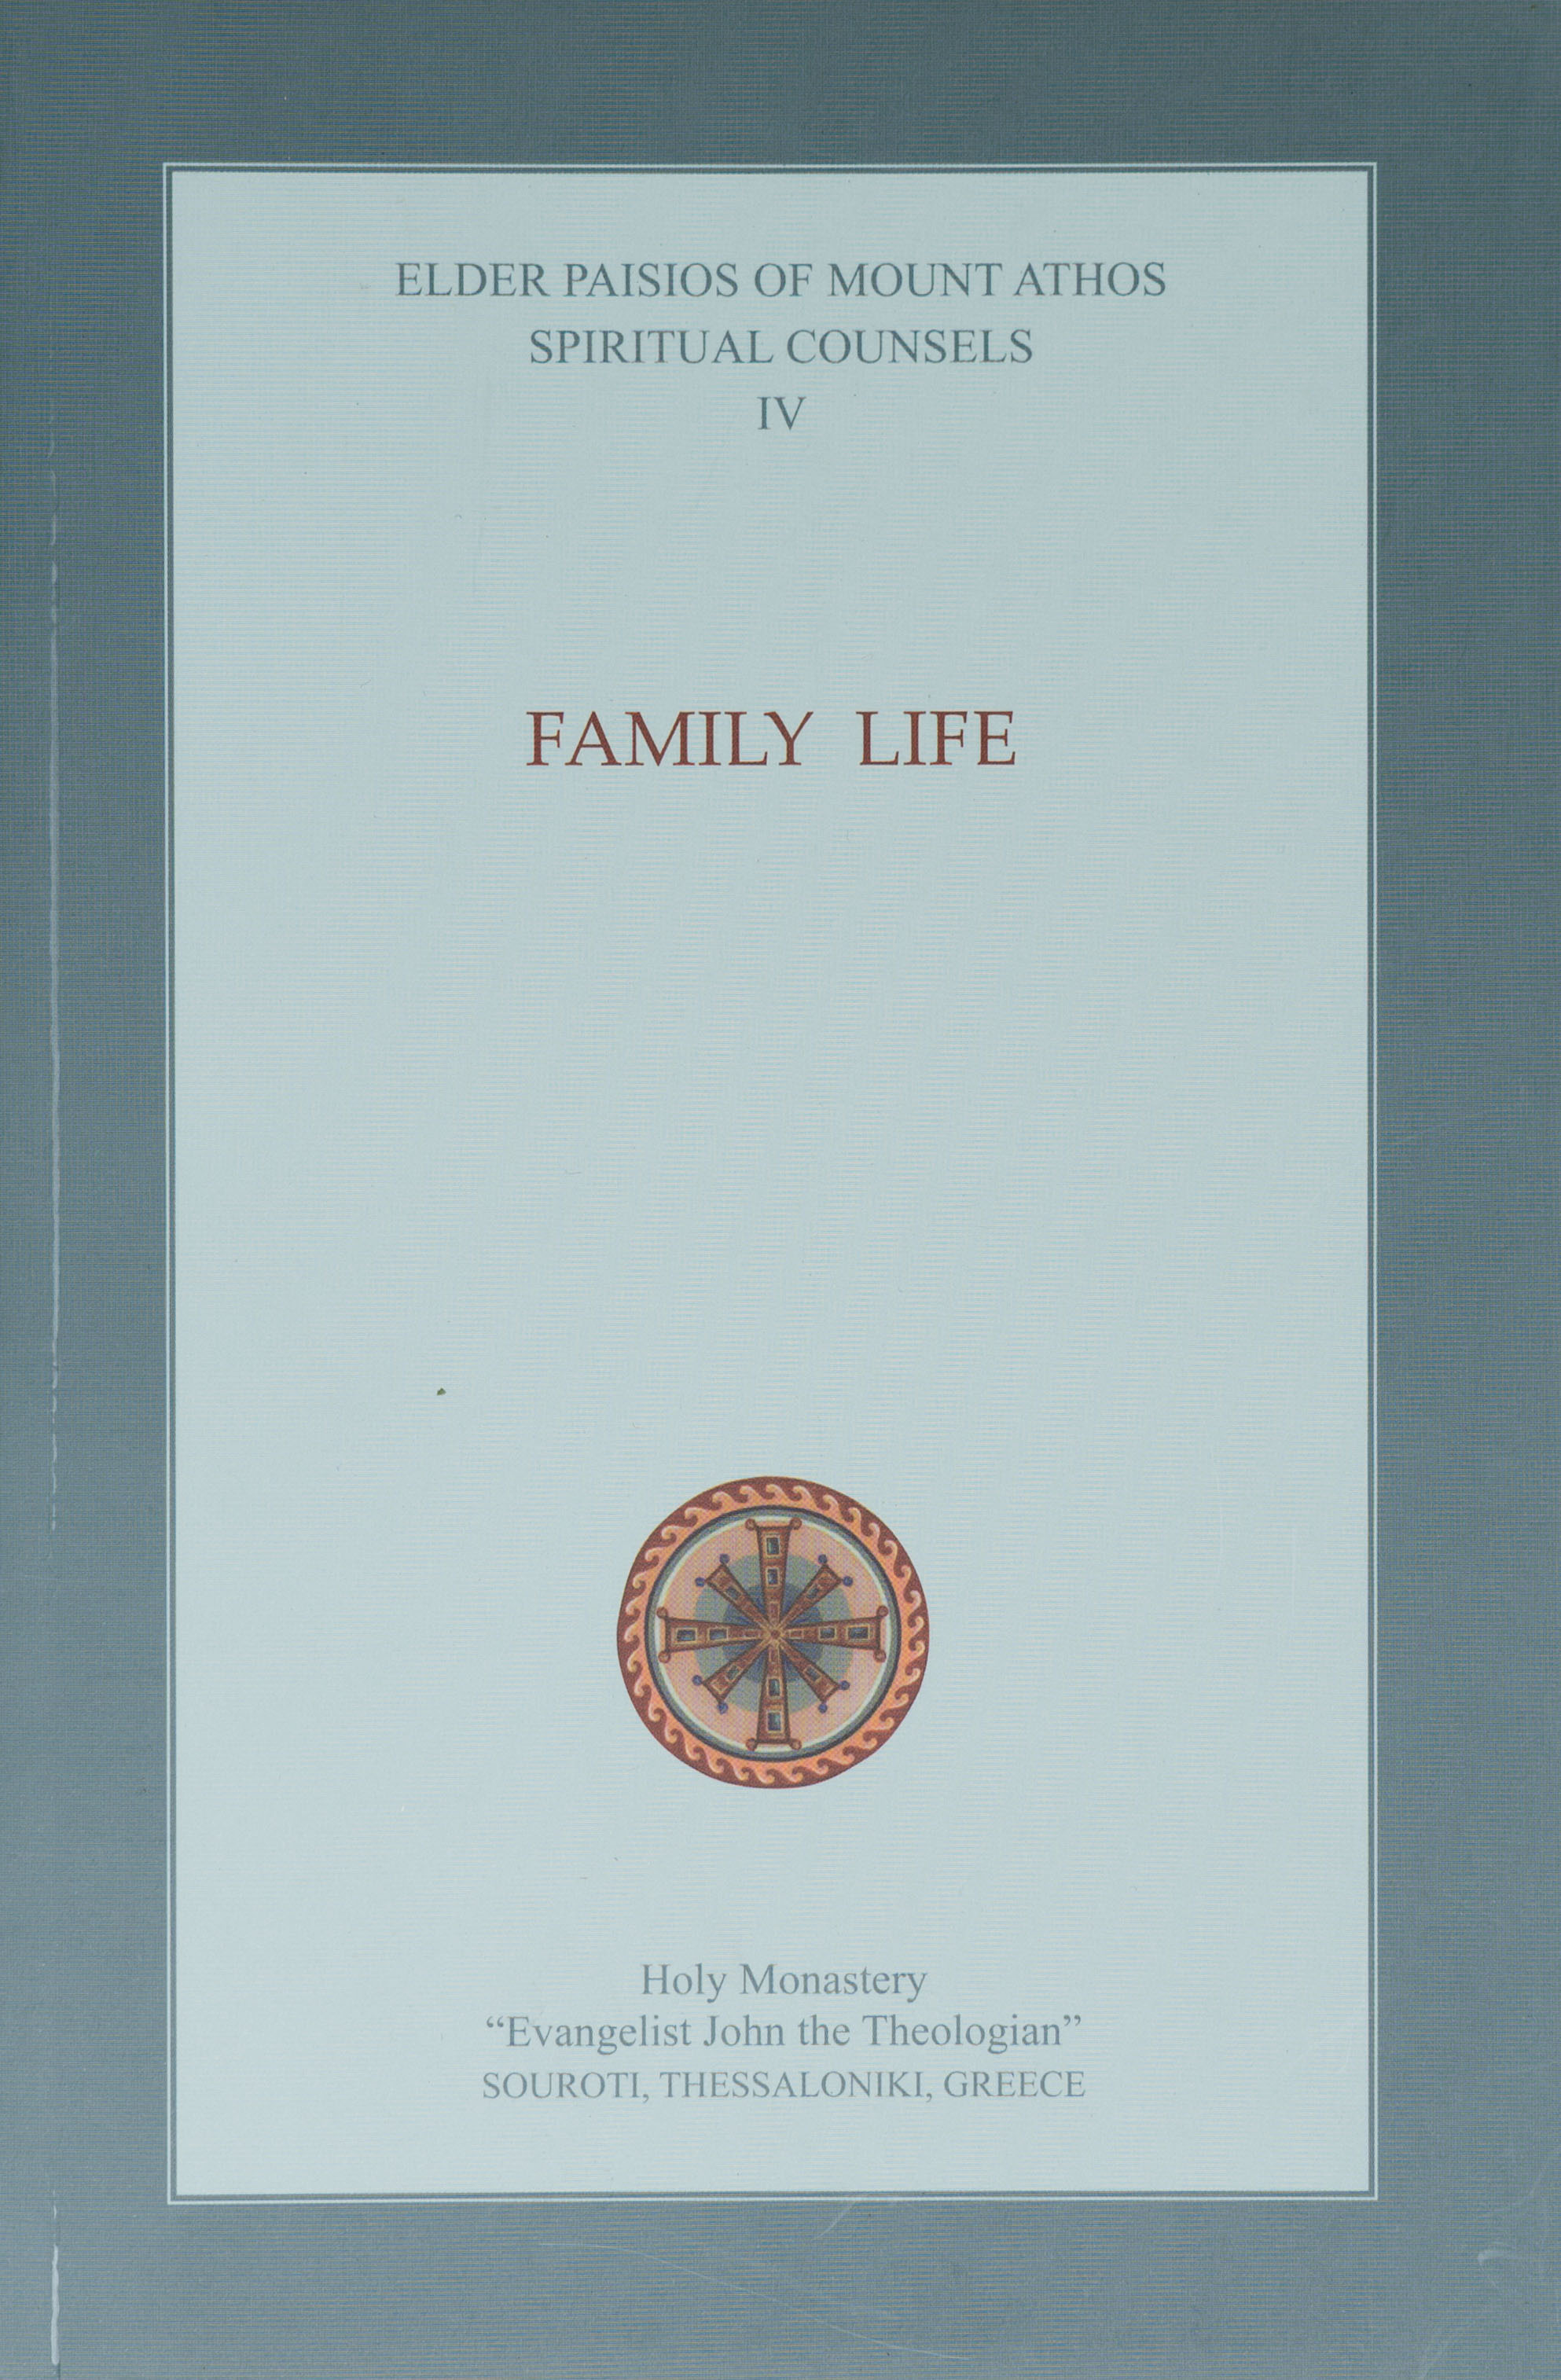 Spiritual Counsels Volume IV: Family Life